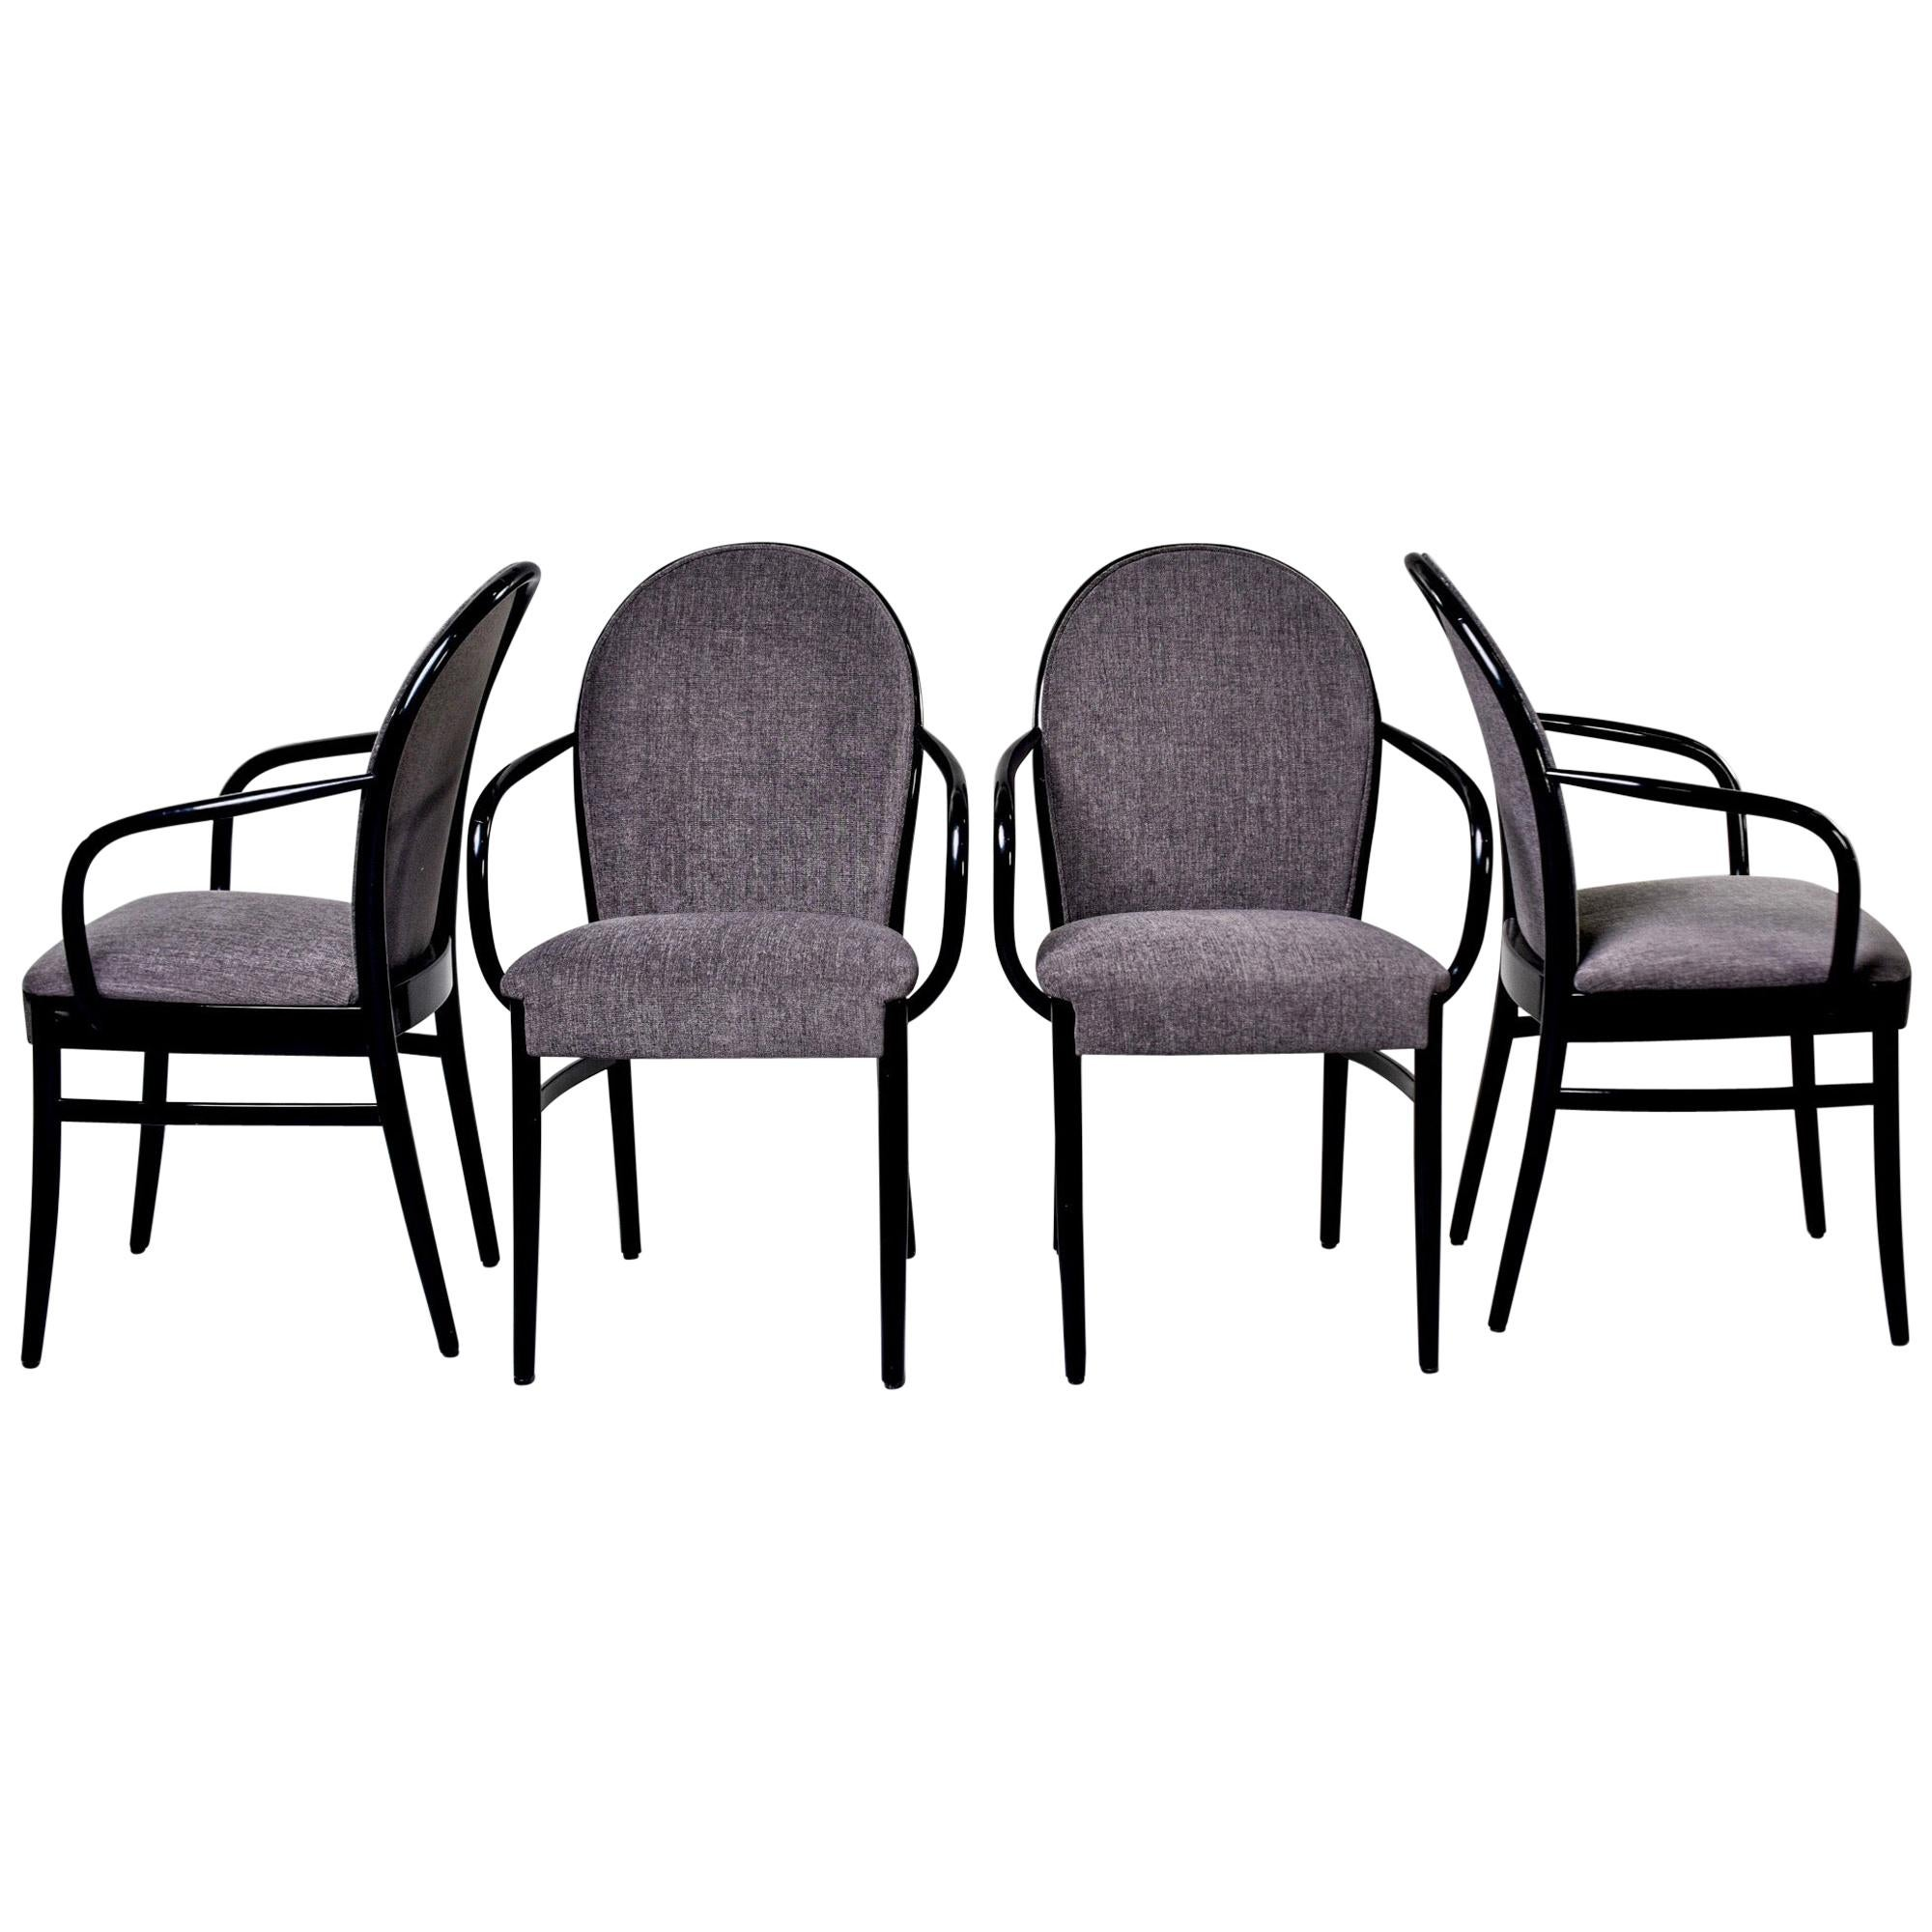 Set of Four Midcentury Ebonized Bentwood Chairs